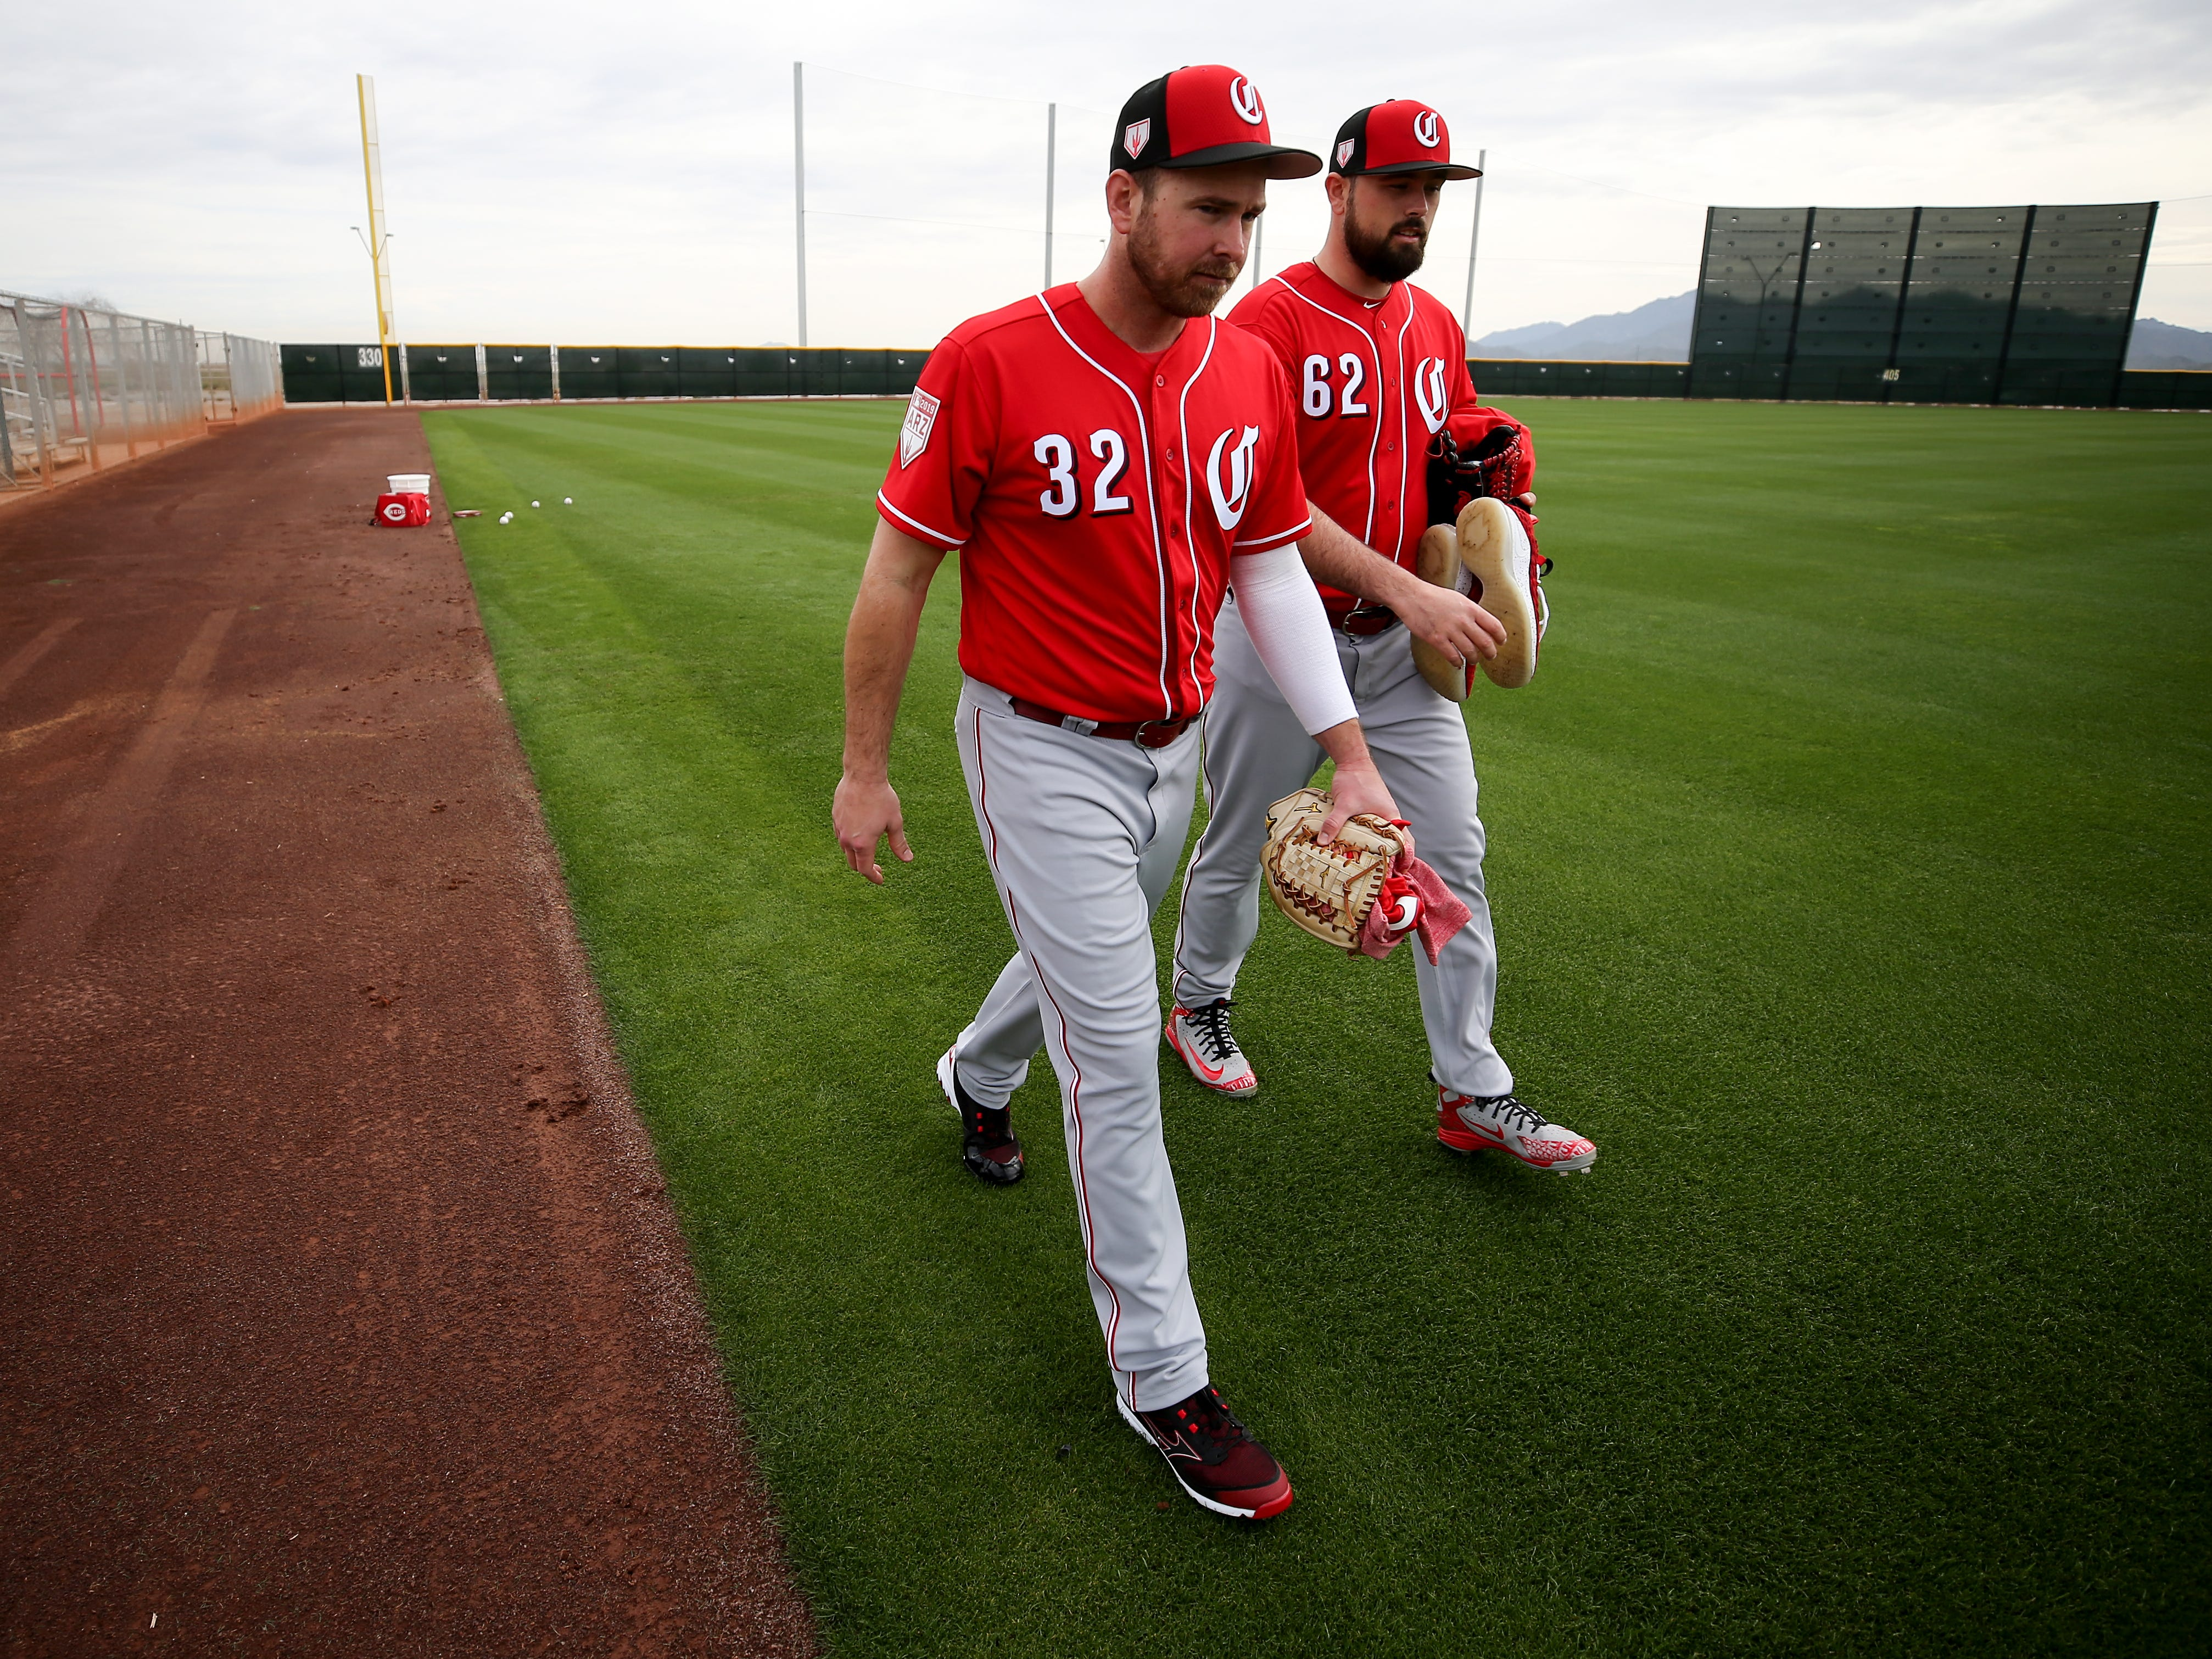 Cincinnati Reds relief pitcher Zach Duke (32), left, and Cincinnati Reds relief pitcher Jackson Stephens (62) walk off the field after long-toss drills, Wednesday, Feb. 13, 2019, at the Cincinnati Reds spring training facility in Goodyear, Arizona.